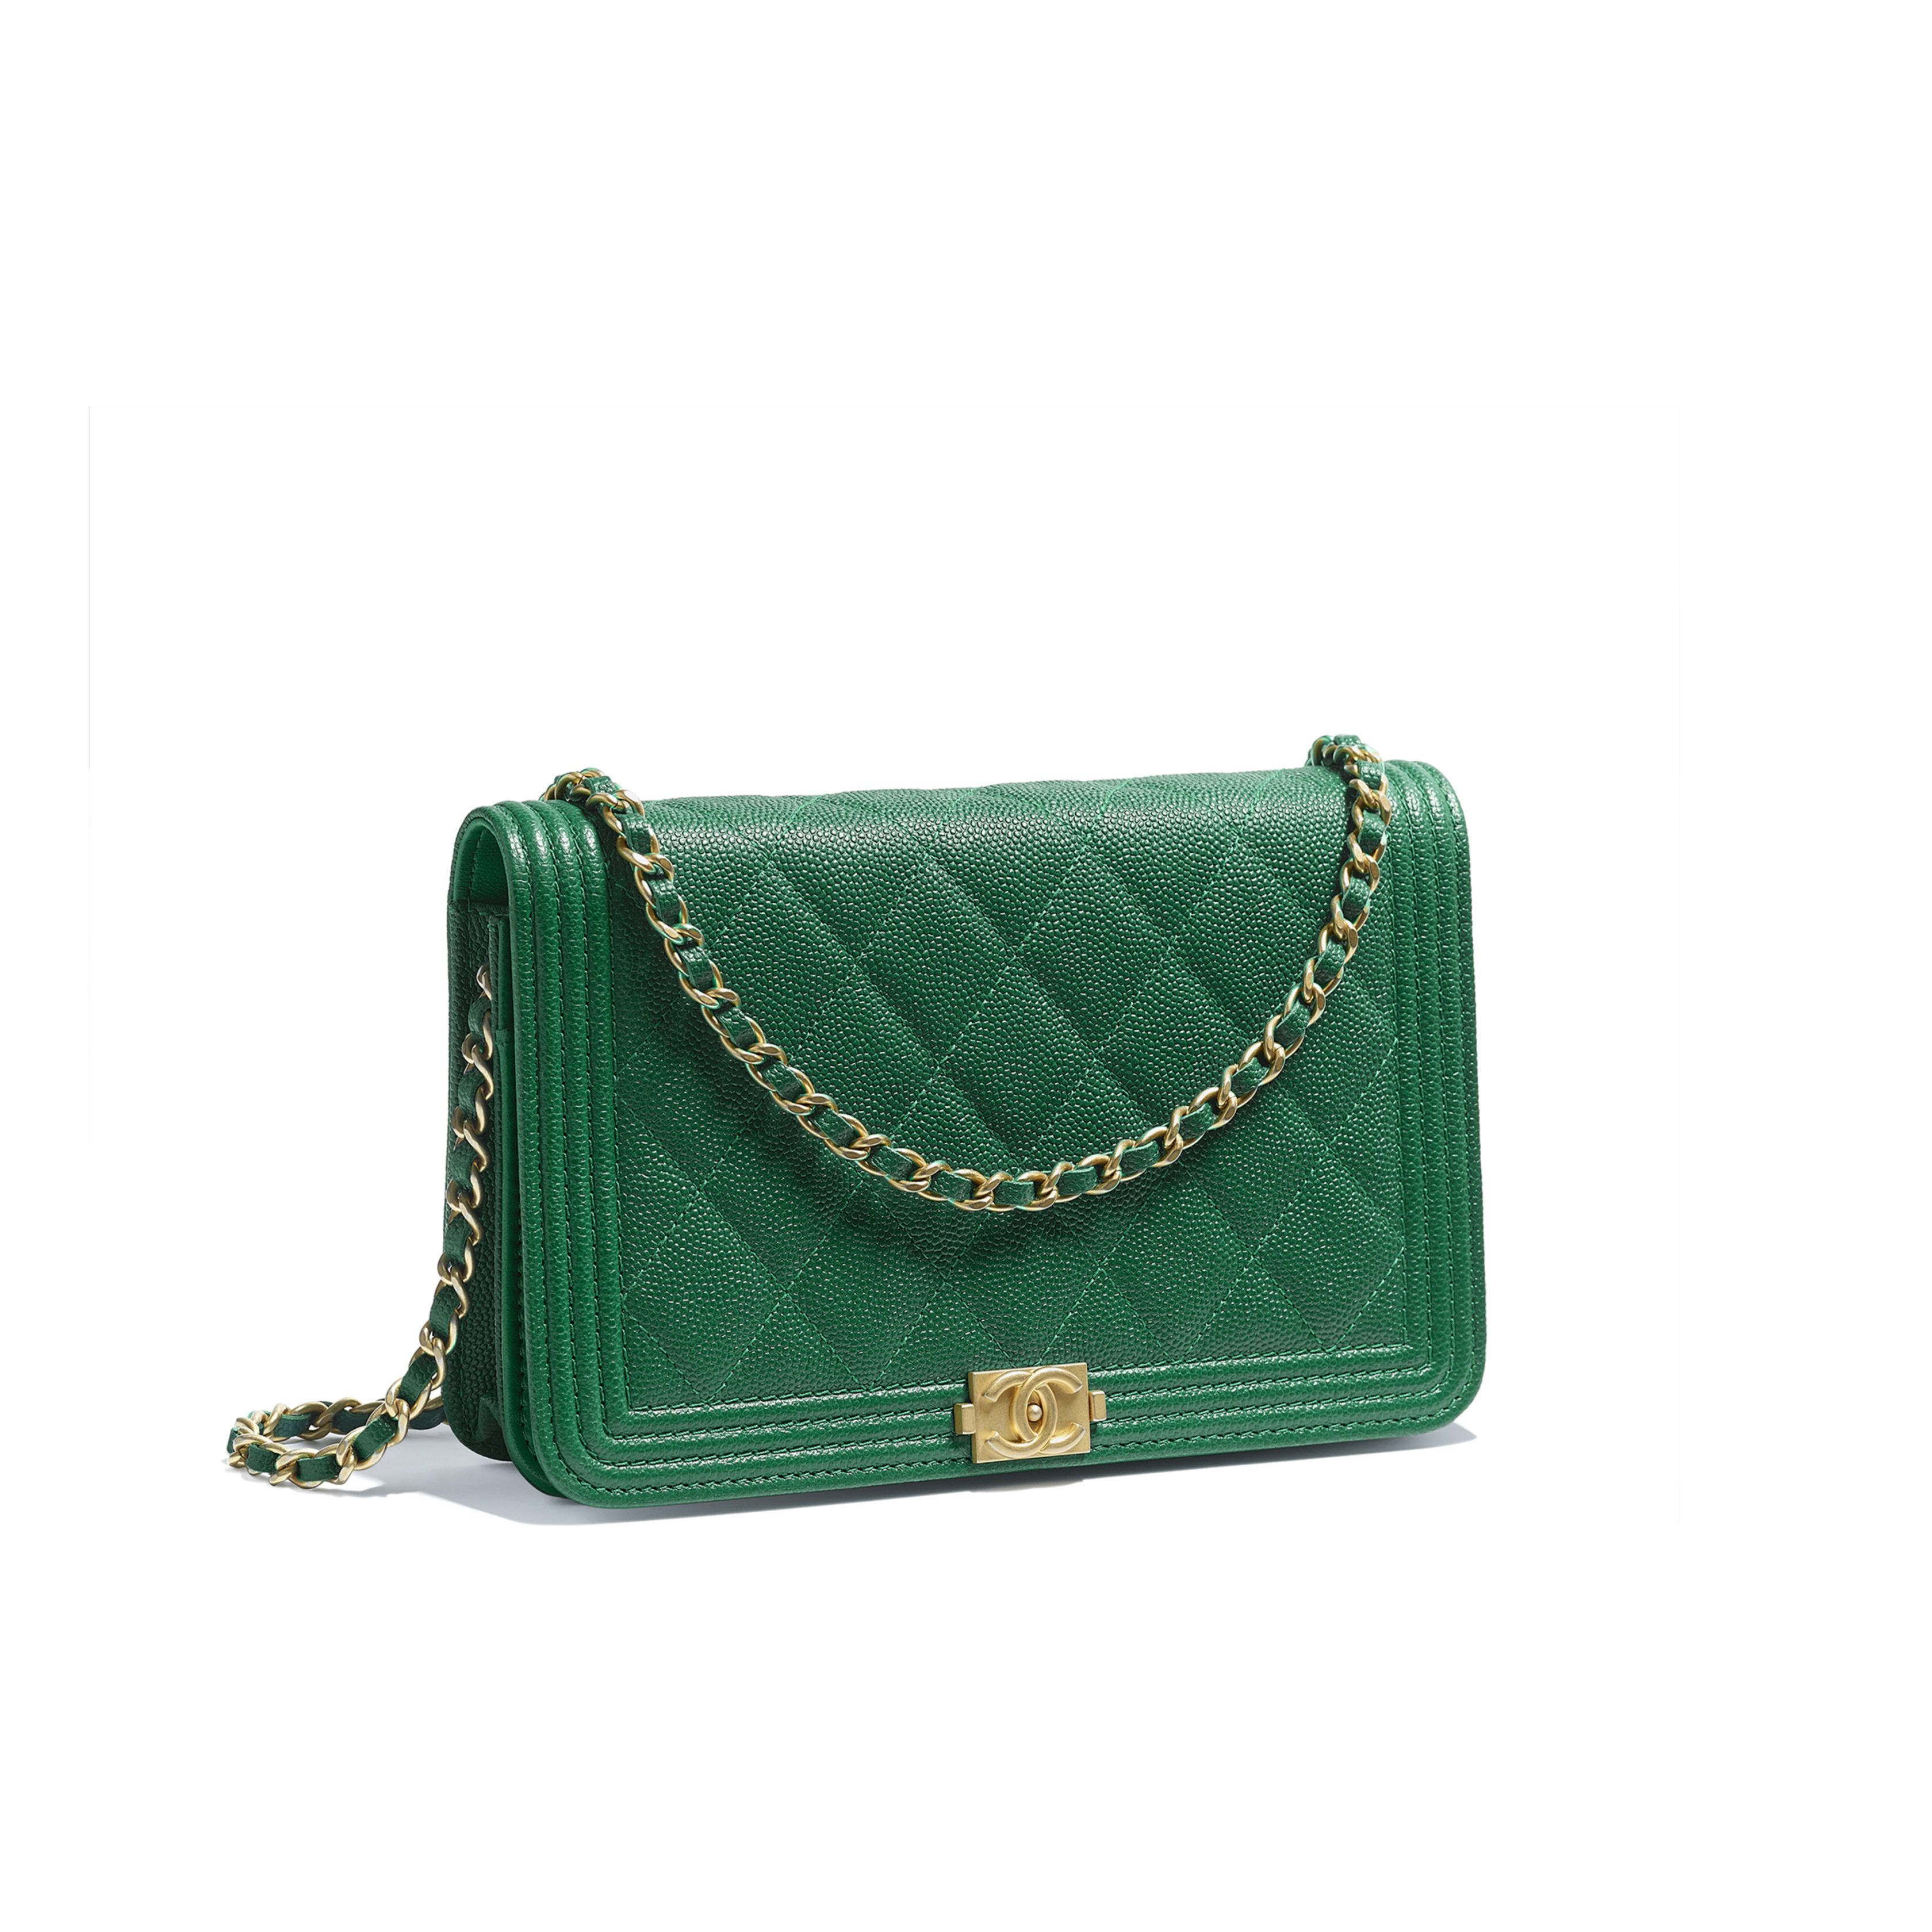 6d9bea160227 BOY CHANEL Wallet on Chain Grained Goatskin & Gold-Tone Metal Green - $2500  view 1 - see full sized version